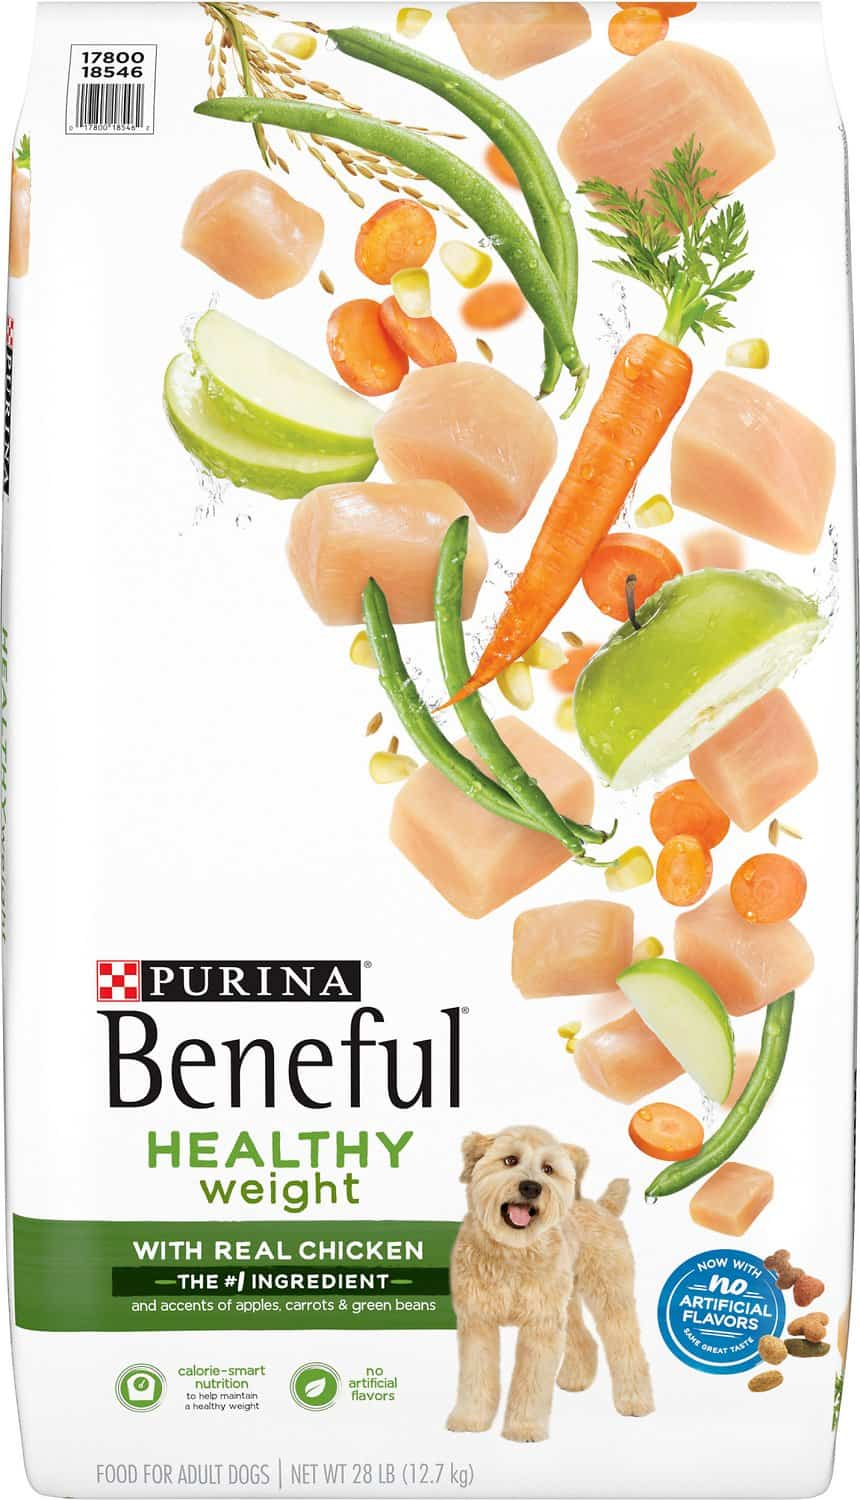 10 Best & Healthiest Dog Food for Puggles in 2021 20